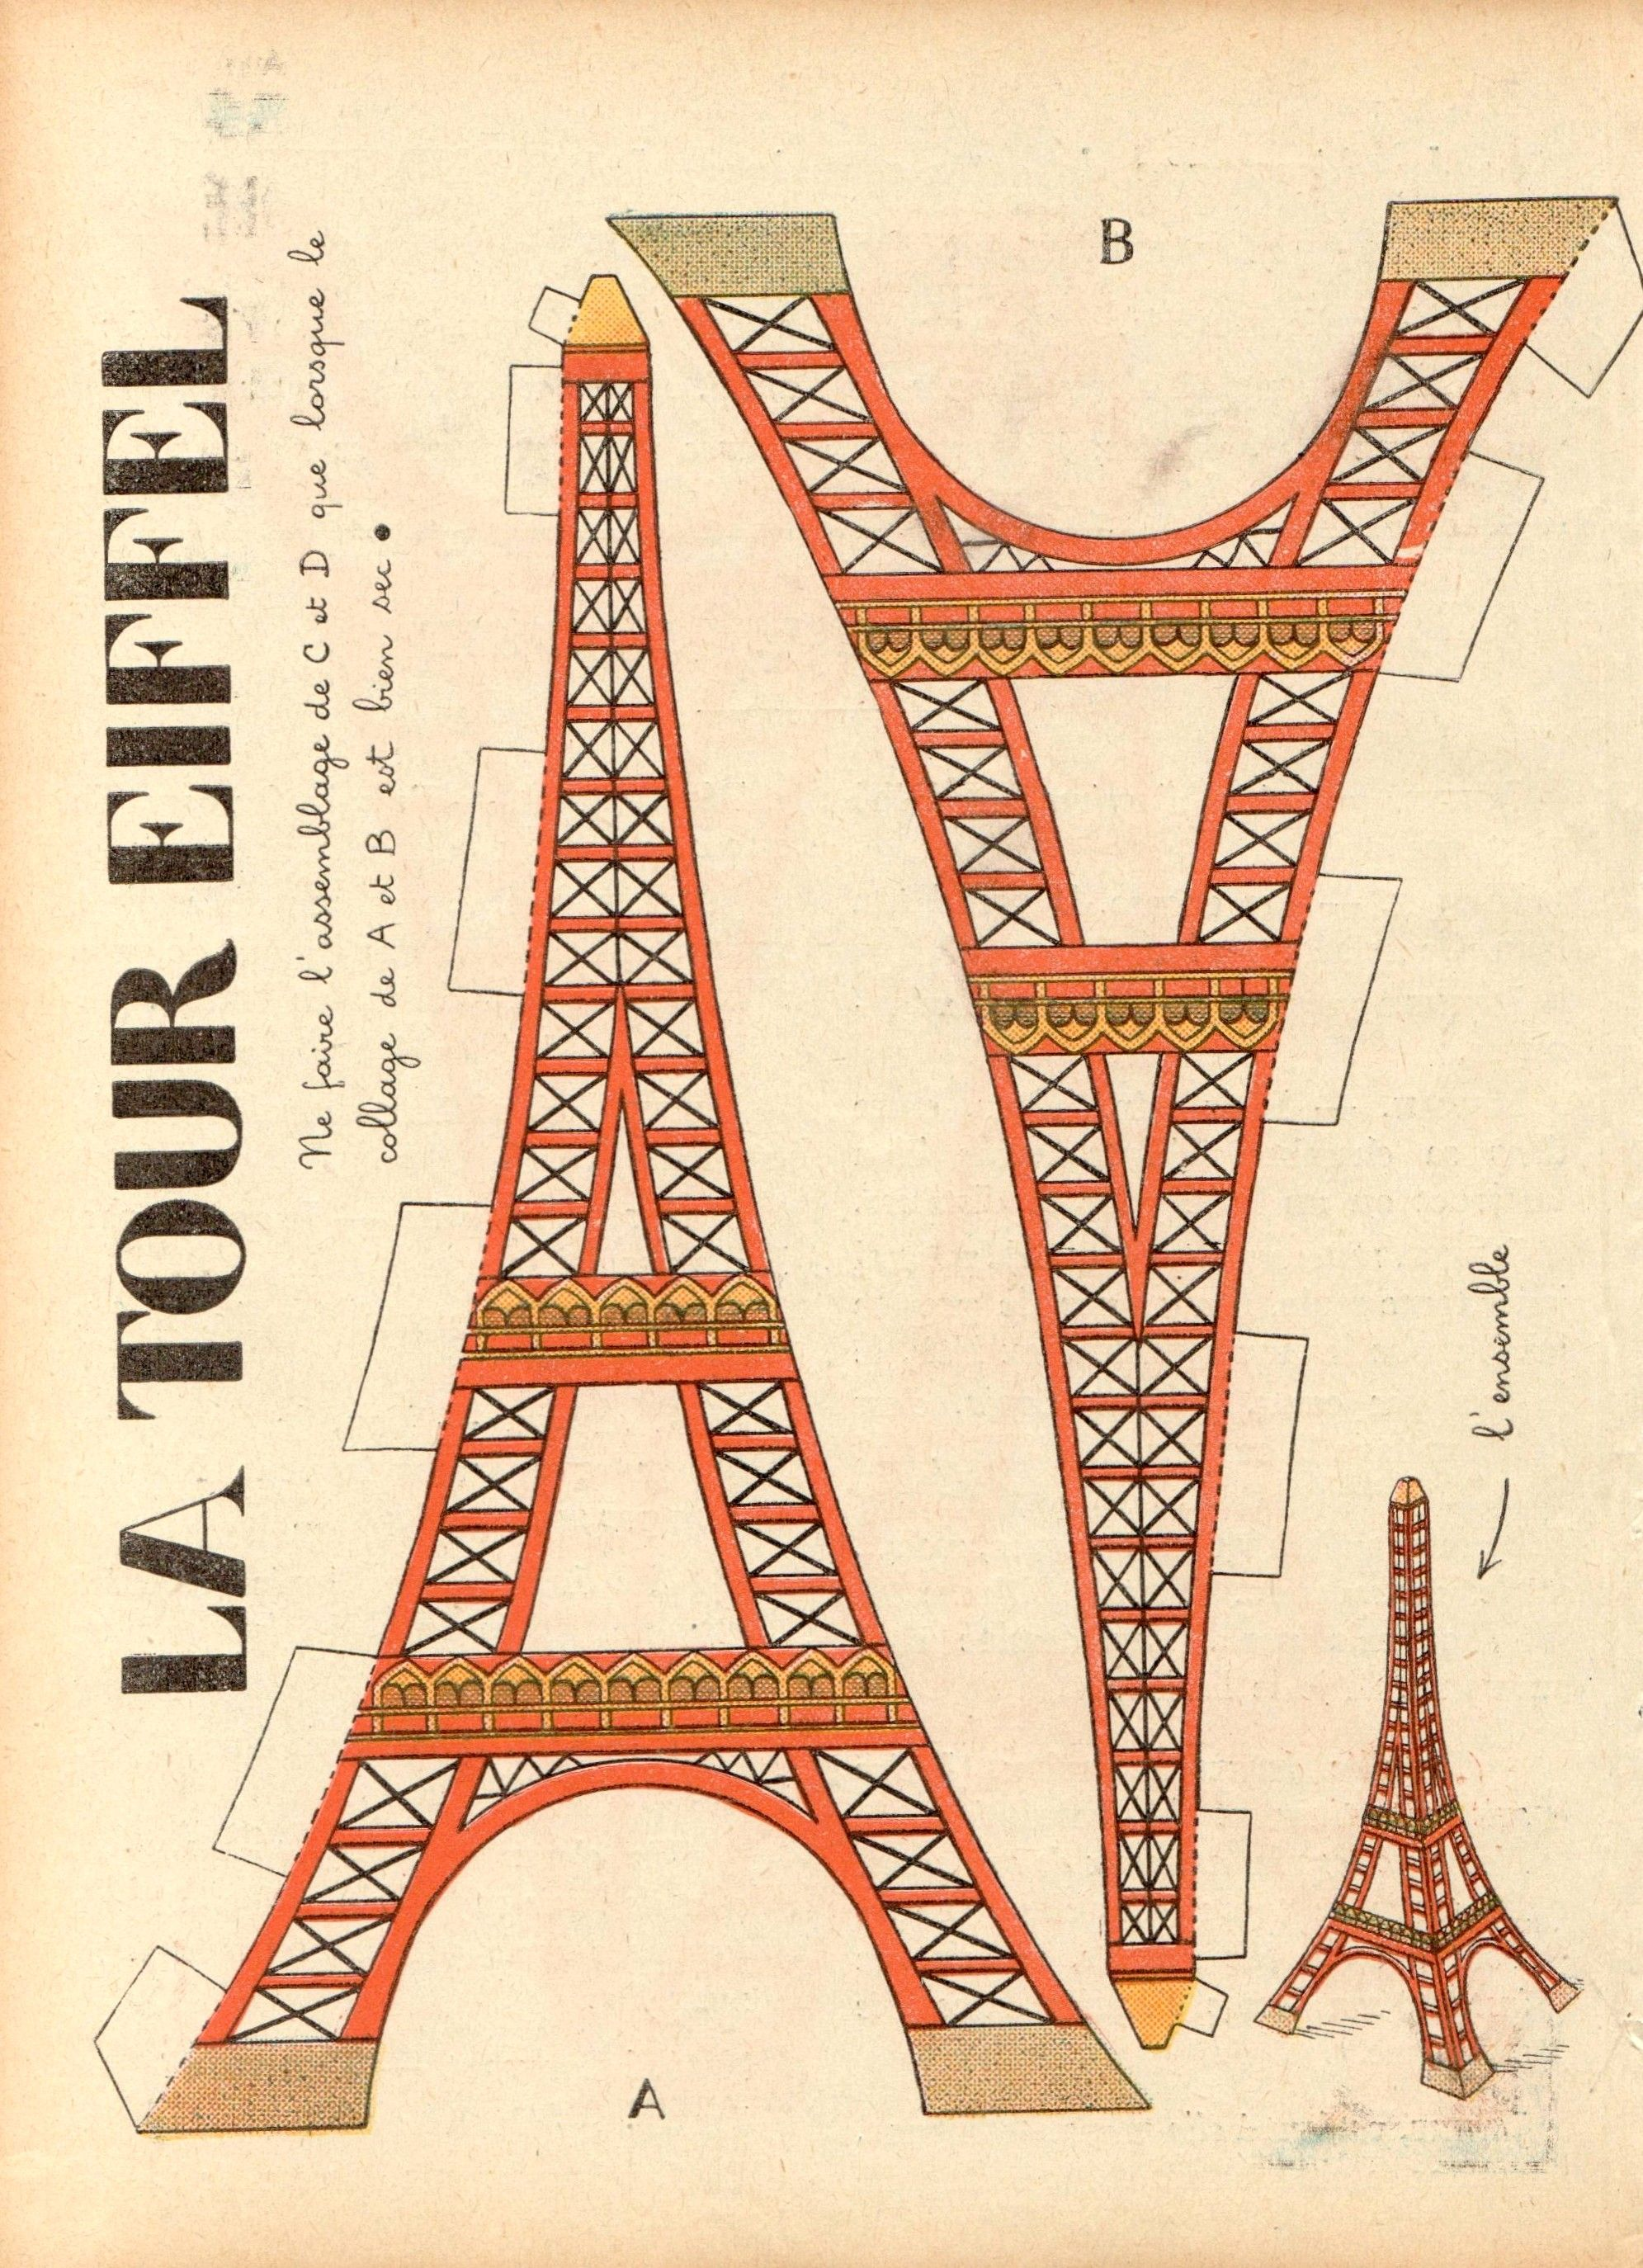 Images About Eiffel Tower Inspiration On Pinterest Filet abfcbabddefffba Eiffel Tower Inspiration